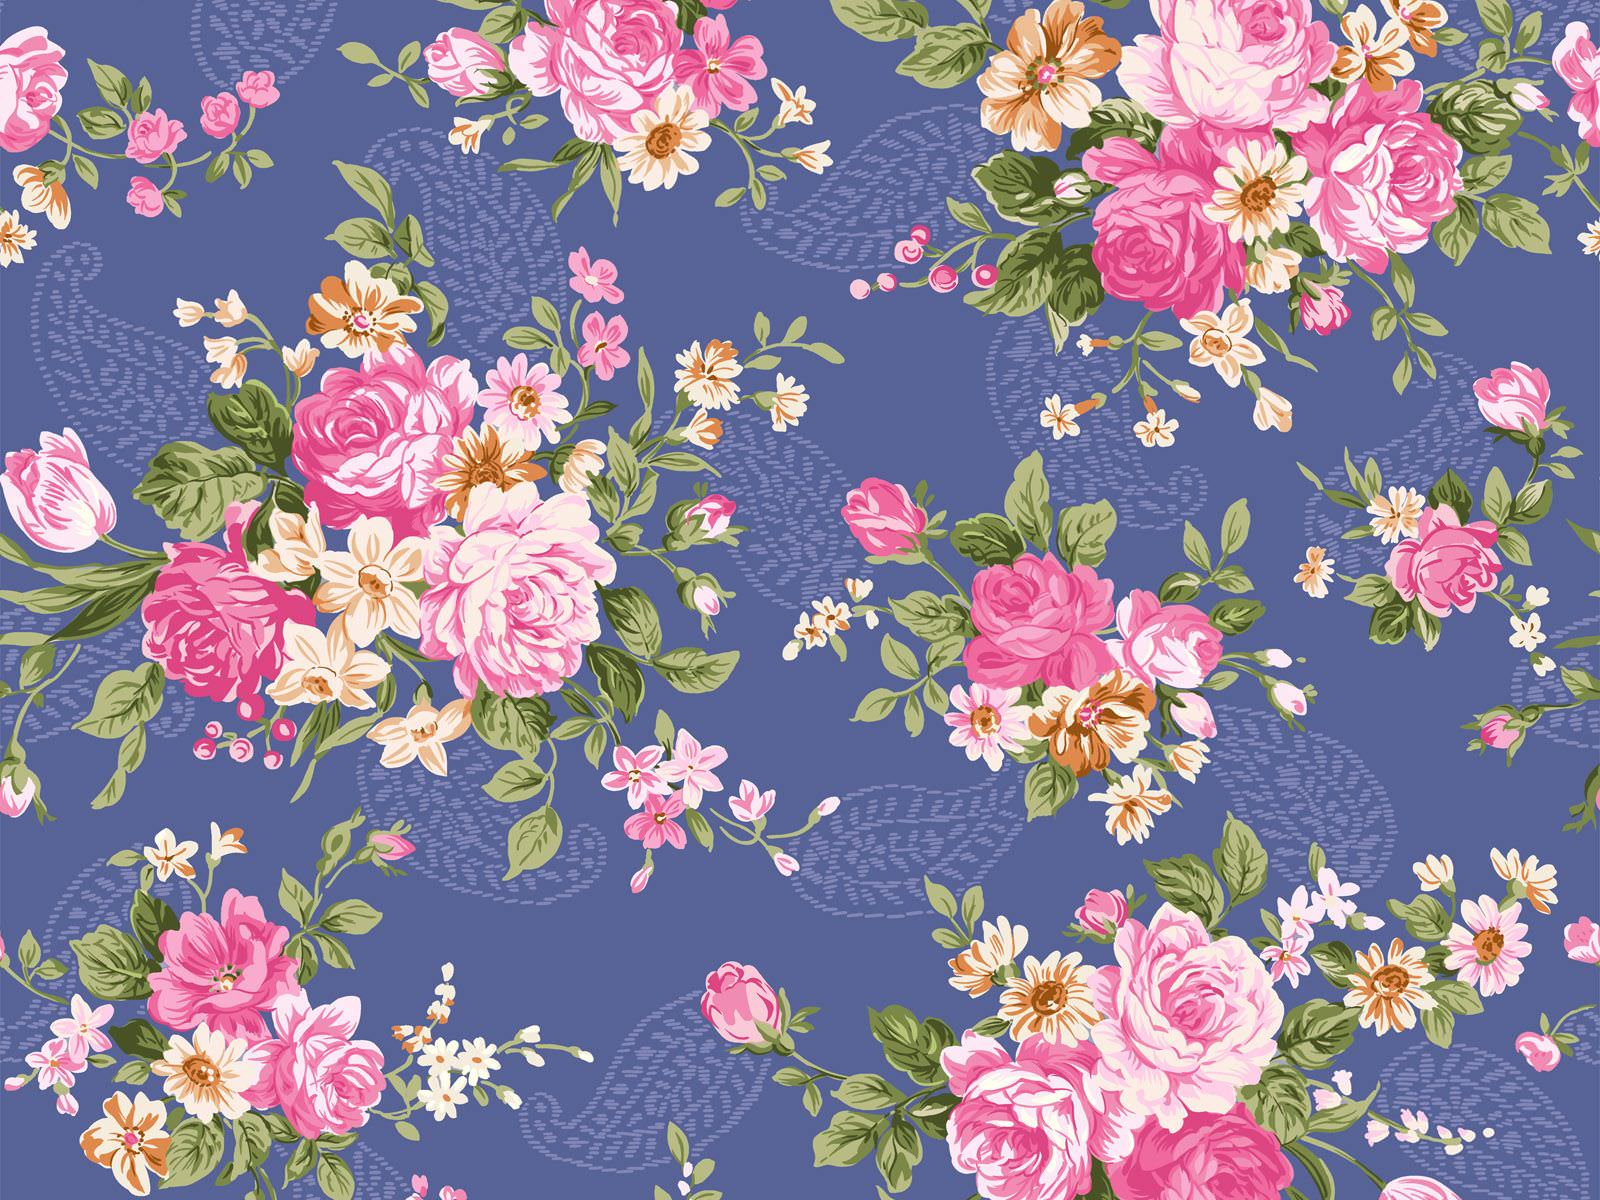 Floral Patterns Vintage Download Backgrounds For Powerpoint